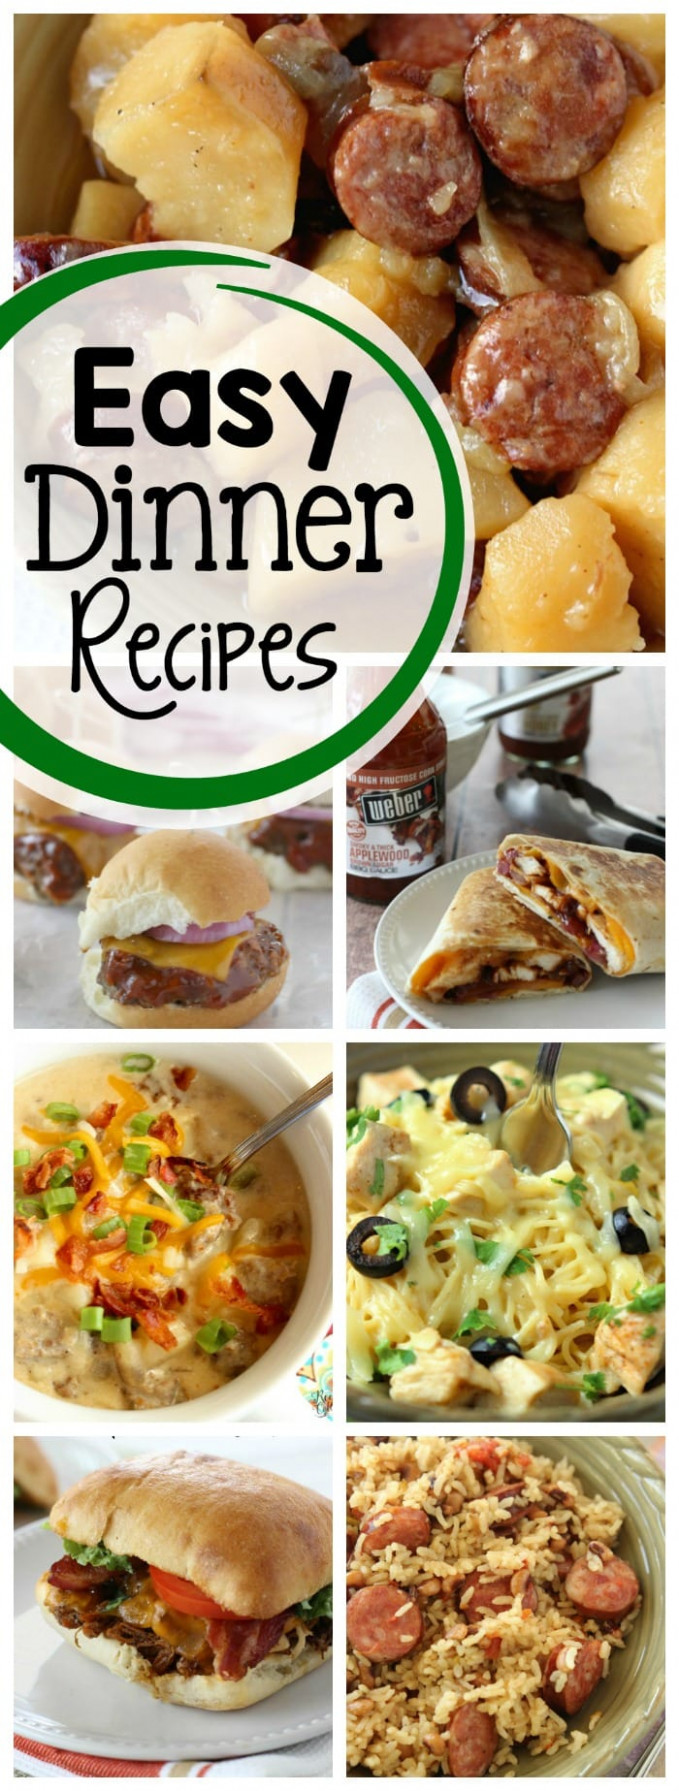 15 Best Weeknight Dinner Recipes - Diary of A Recipe Collector